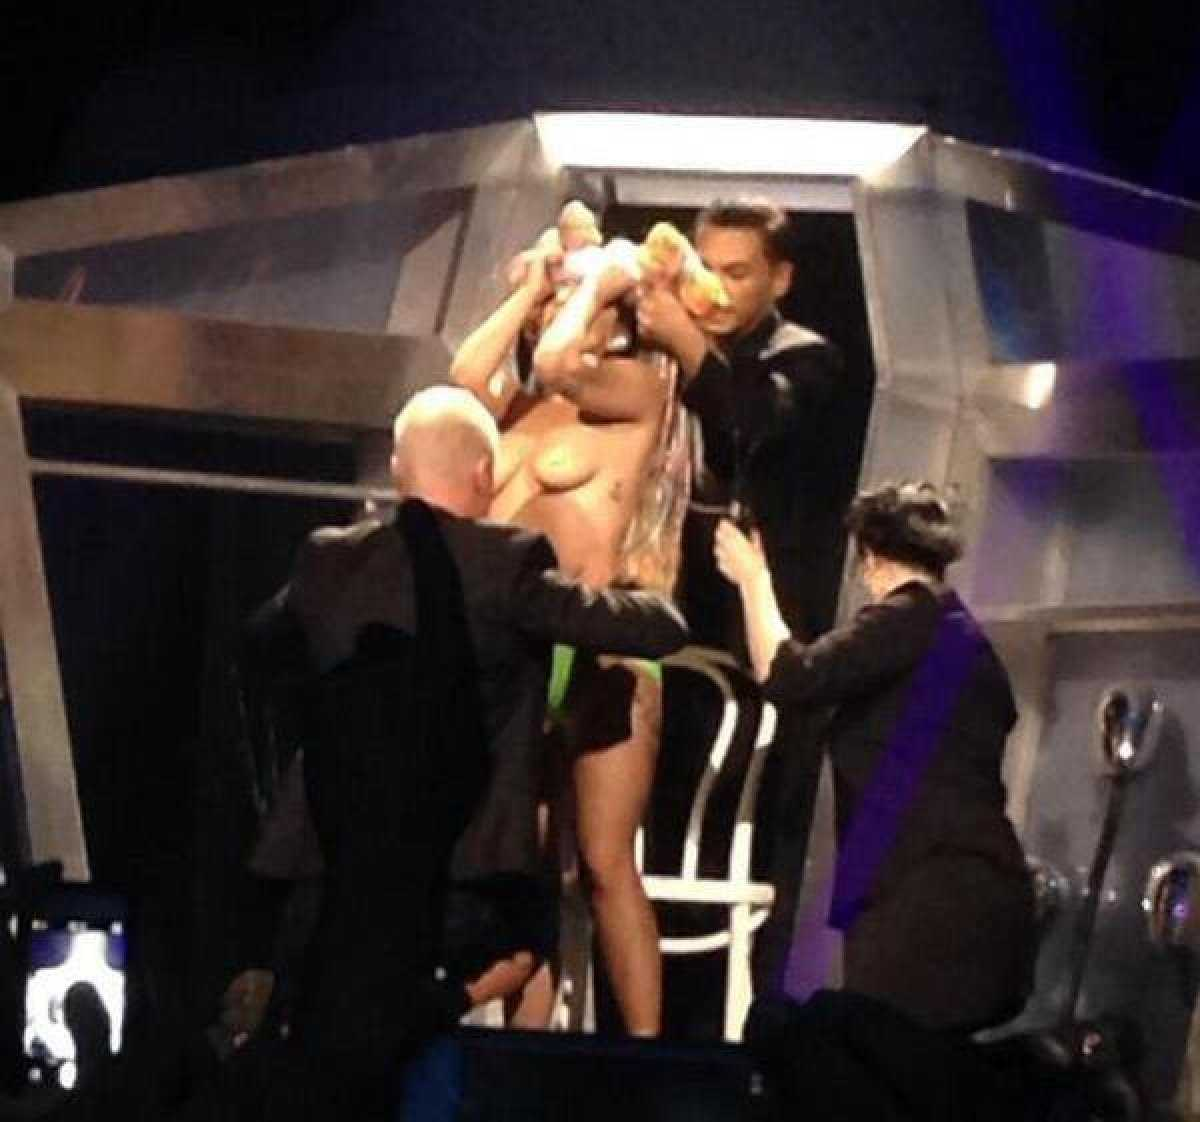 Lady Gaga Proves She's Not Bashful With NSFW Mid-Concert Striptease